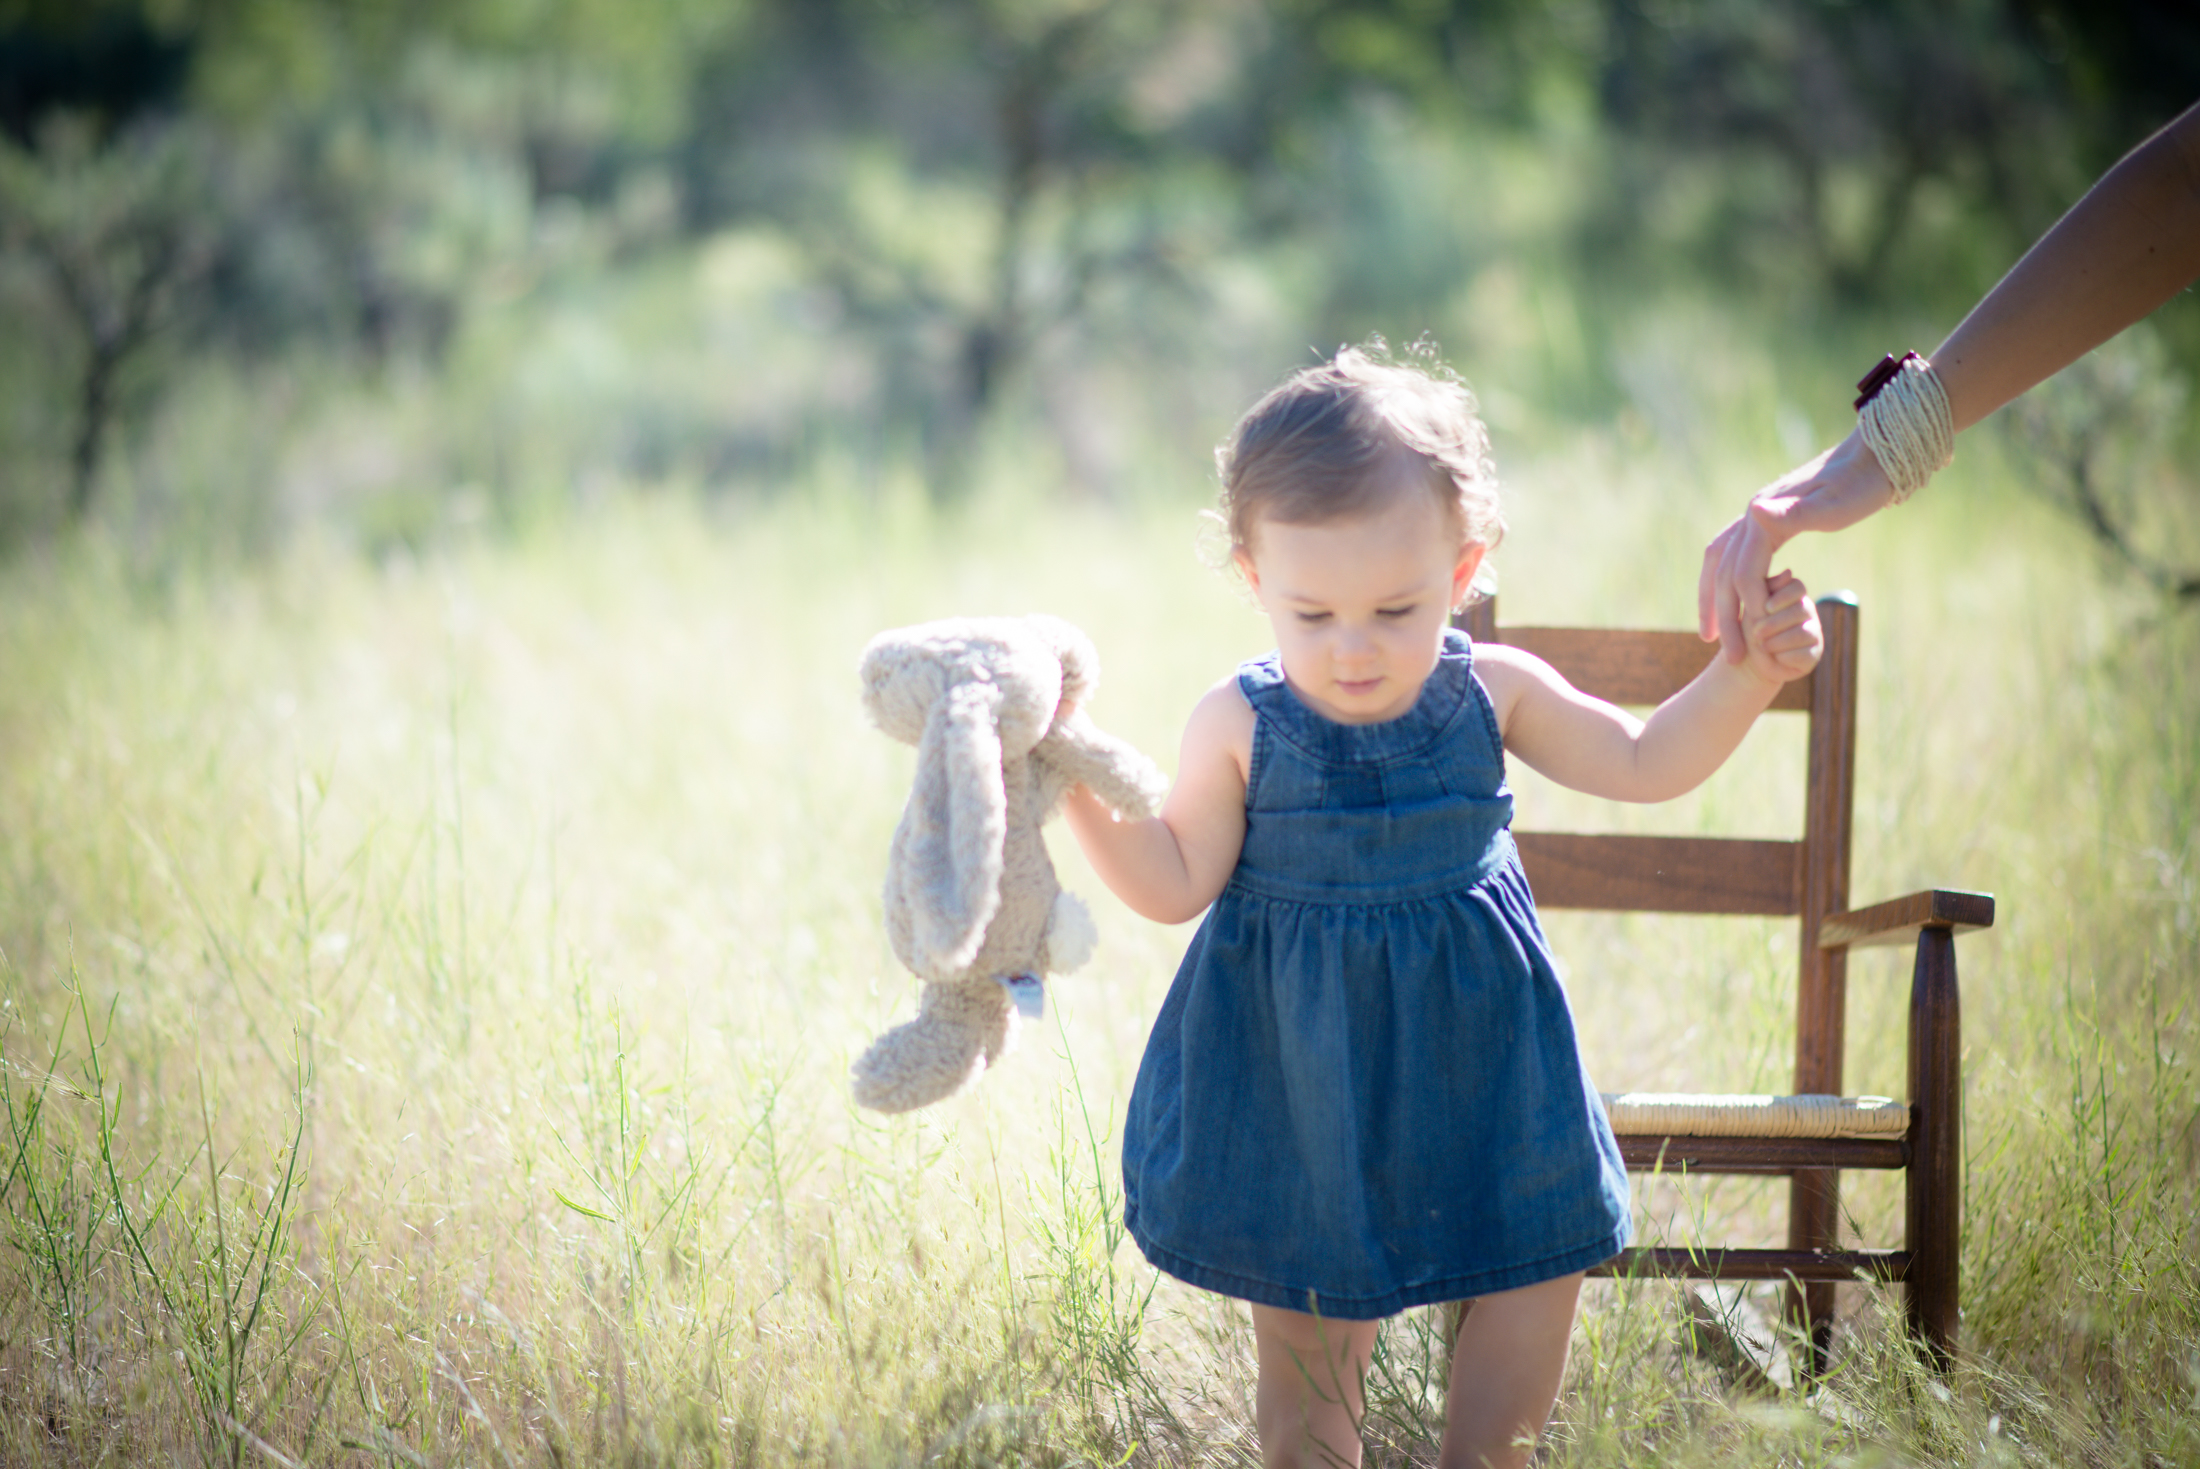 Natalie Koziuk Photography | Boise, ID Wedding Photographer | Boise, ID Lifestyle Photographer | Boise Foothills | Baby and teddy